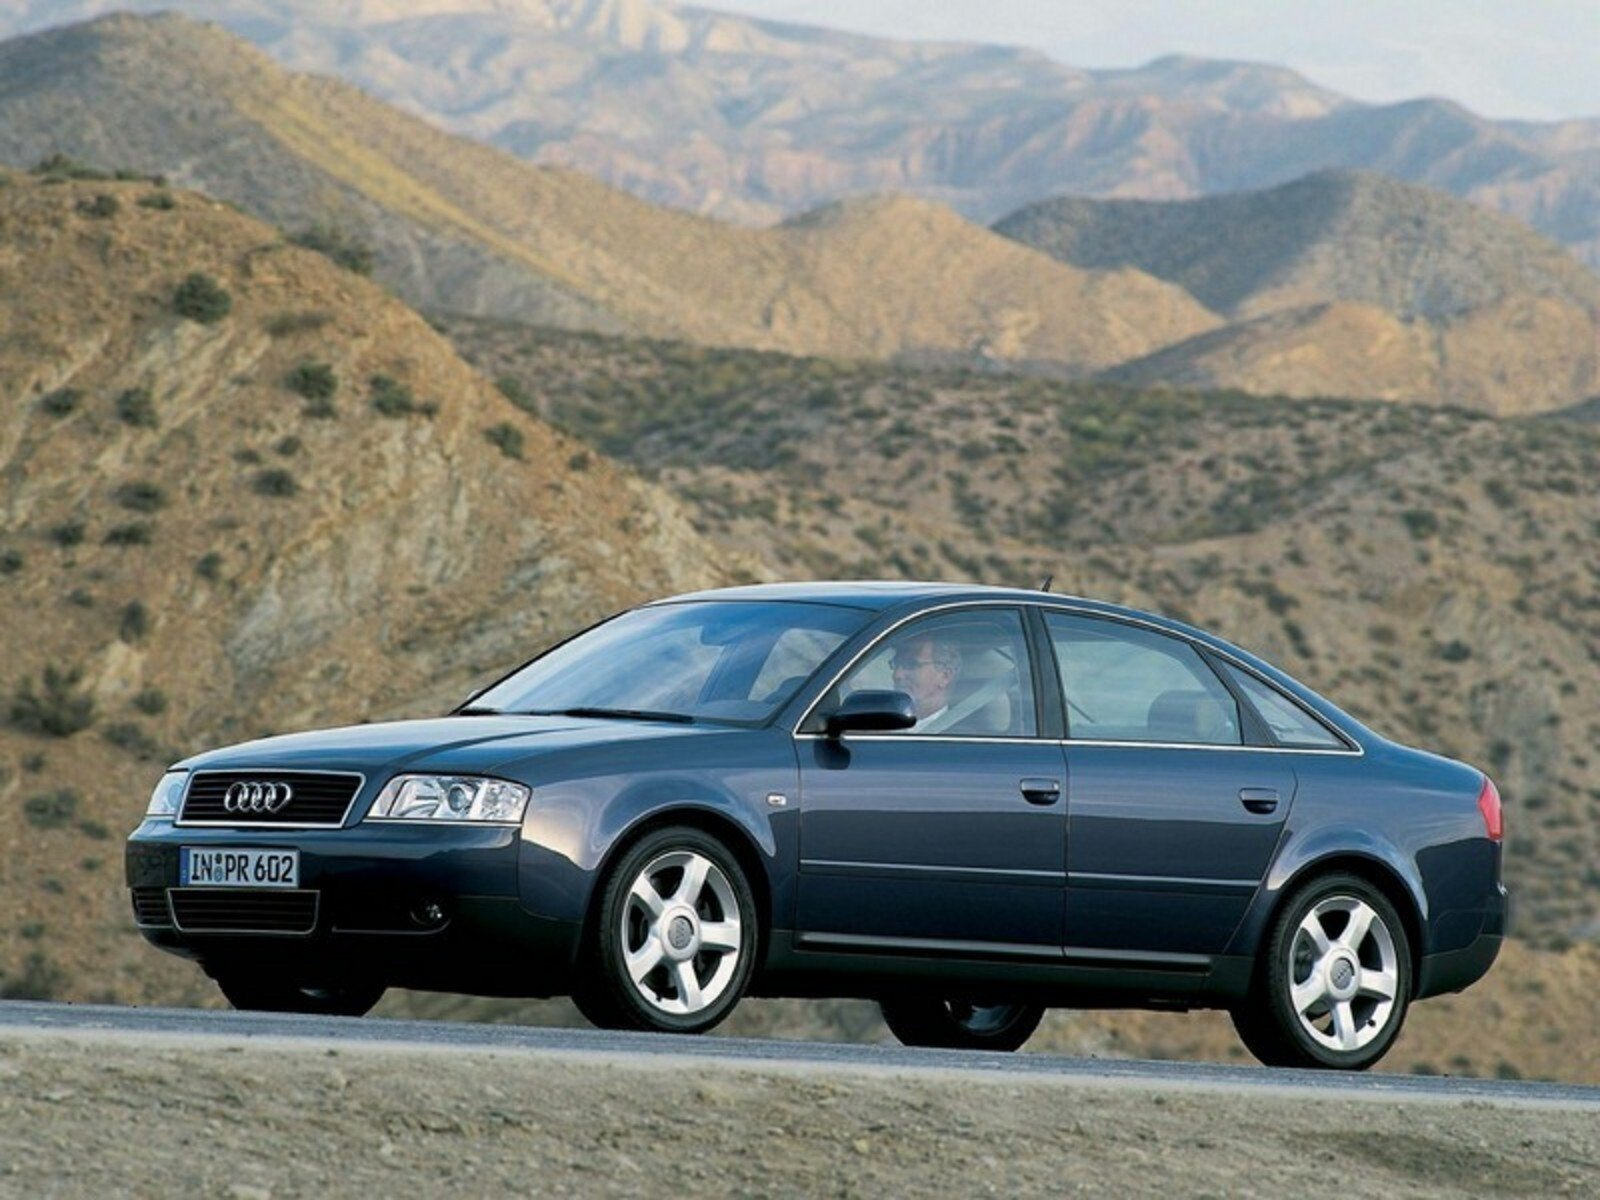 2001 audi a6 picture 29809 car review top speed. Black Bedroom Furniture Sets. Home Design Ideas